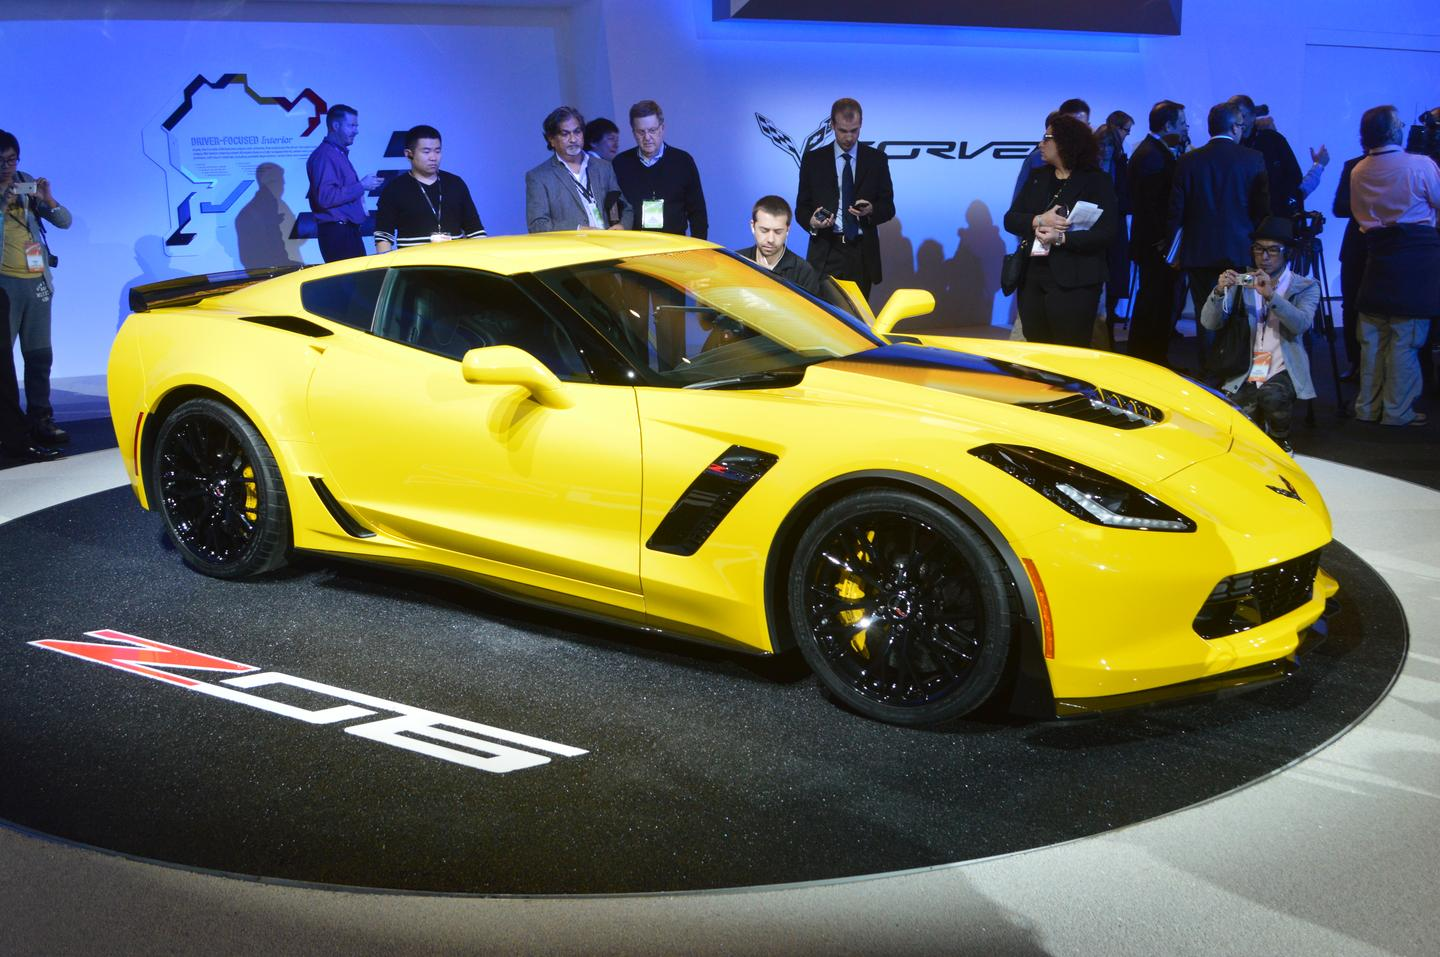 The Z06 new engine delivering 37 percent more power and 40 percent more torque than the Stingray's LT1 engine (Photo: CC Weiss/Gizmag.com)